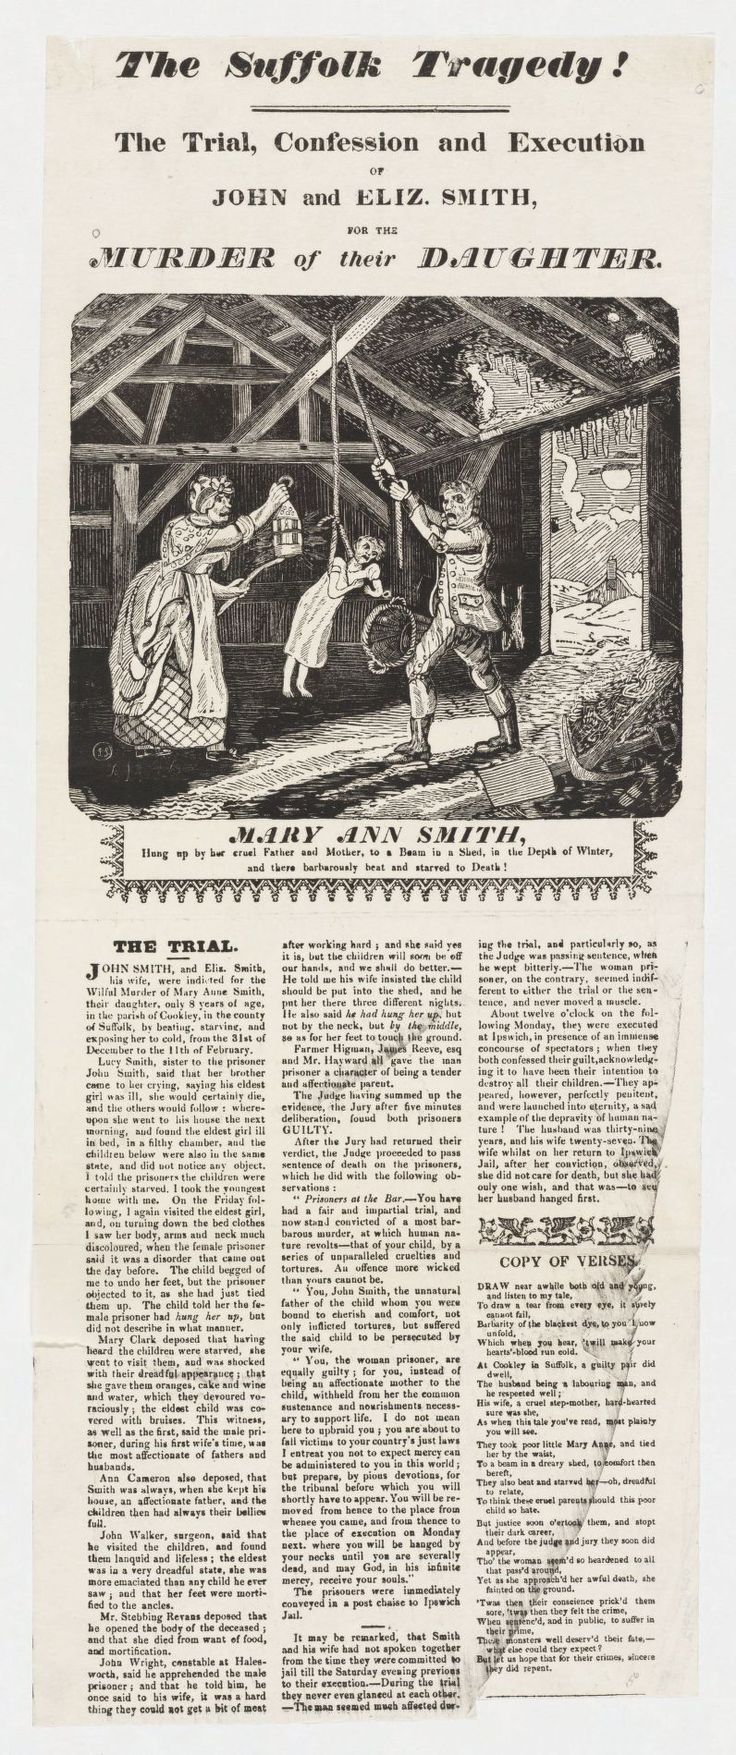 The trial, confession and execution of John and Eliz. Smith, for the murder of their daughter Mary Ann Smith (1812)